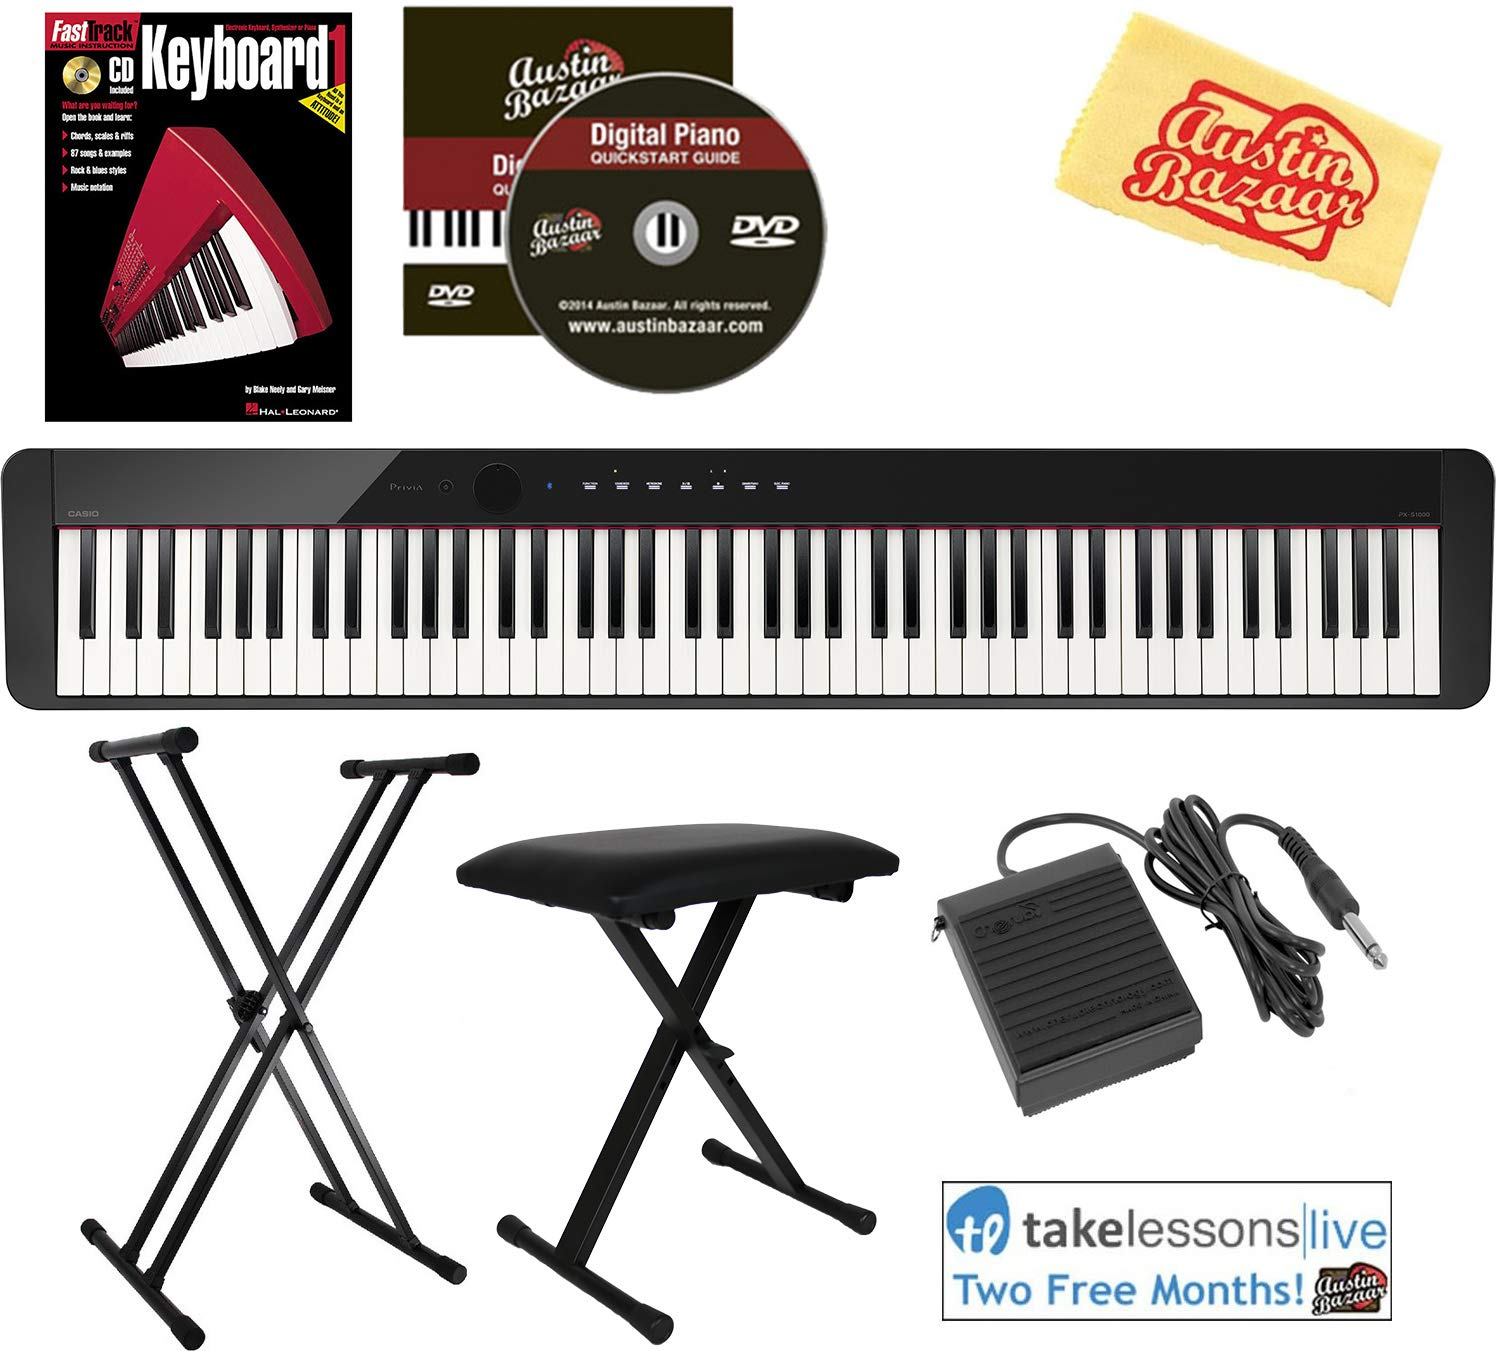 Casio Privia PX-S1000 Digital Piano - Black Bundle with Adjustable Stand, Bench, Sustain Pedal, Instructional Book, Online Lessons, Austin Bazaar Instructional DVD, and Polishing Cloth by Casio